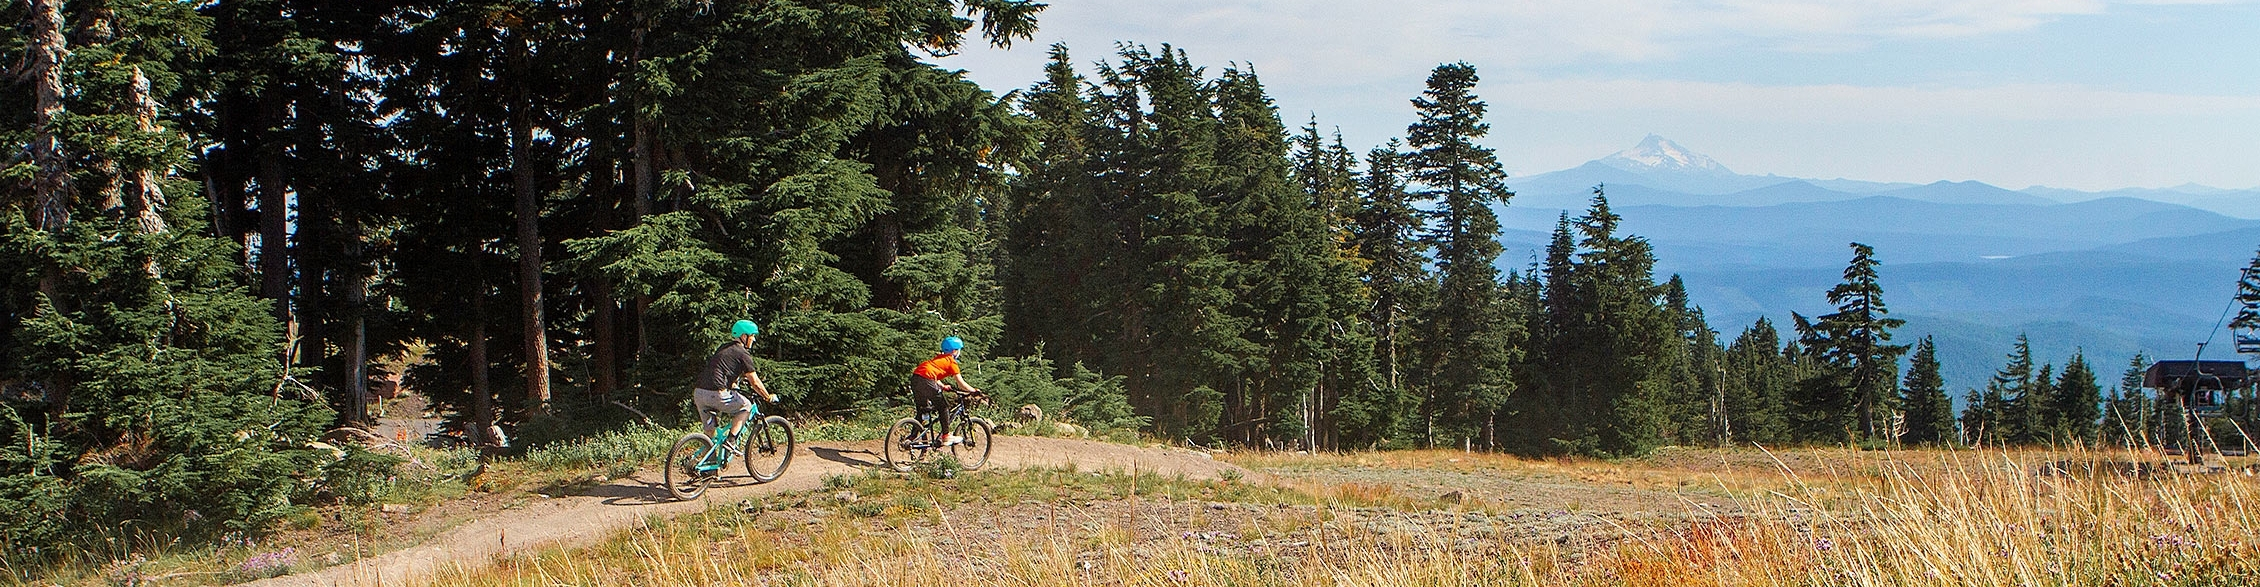 TIMBERLINE MOUNTAIN BIKE LESSONS